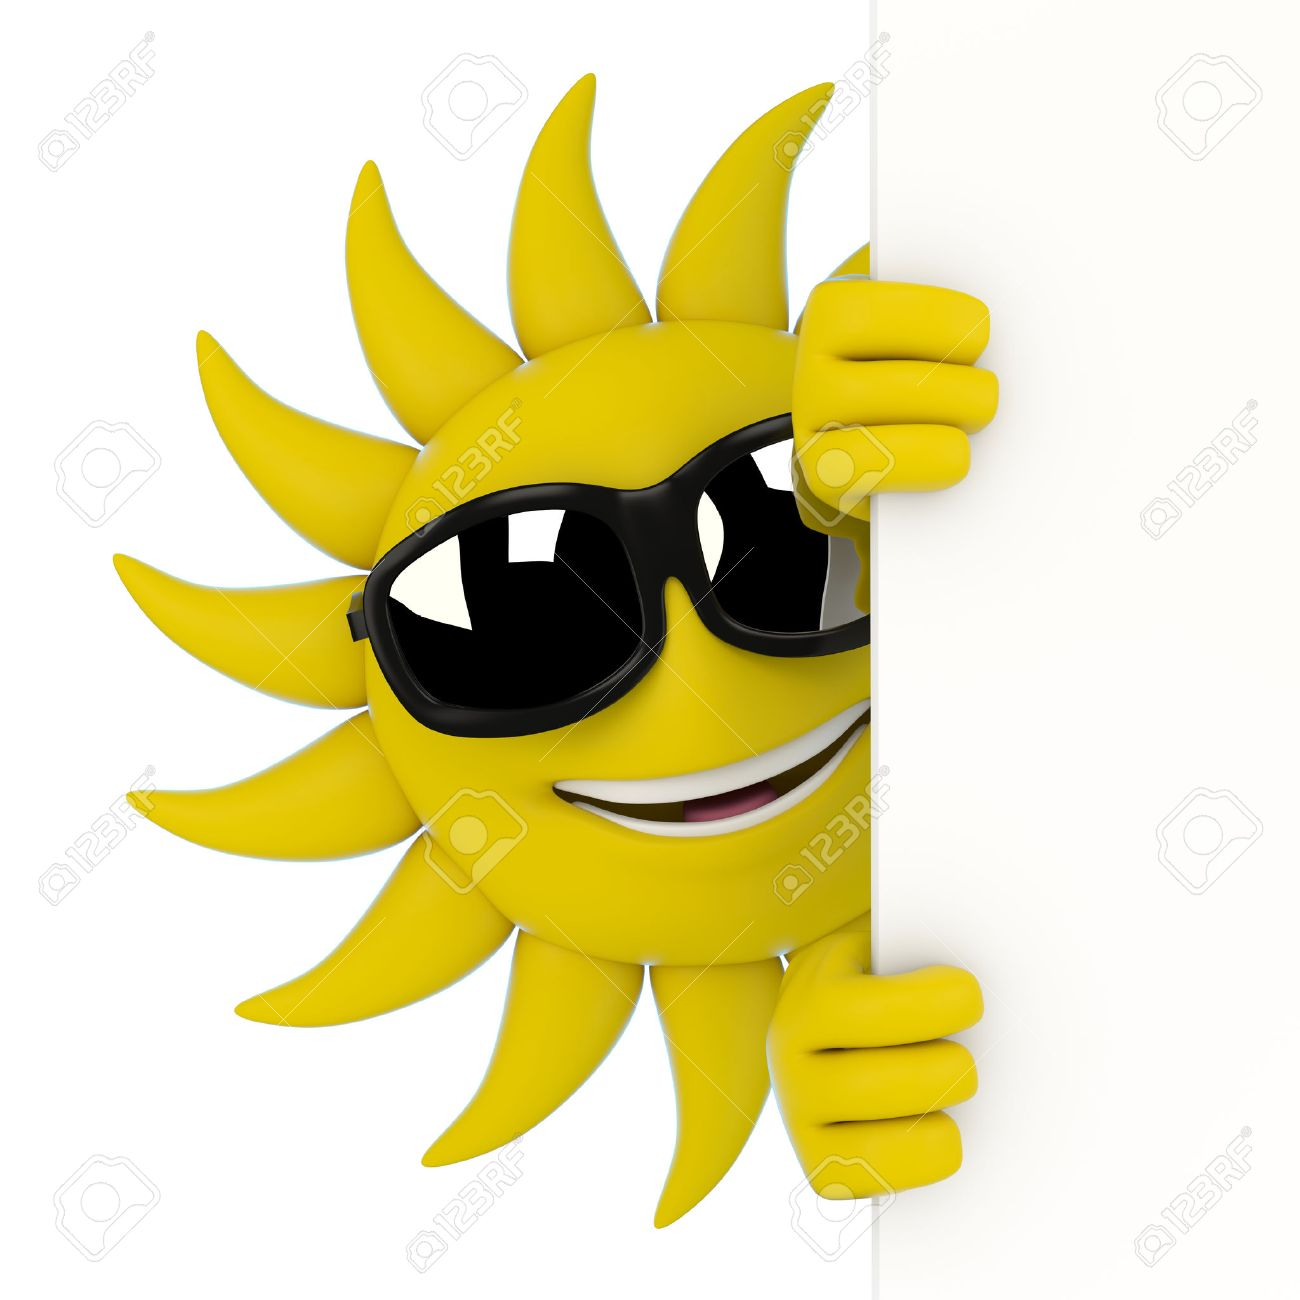 1300x1300 3d Render Illustration Of A Sun Character Hiding Behind A Wall